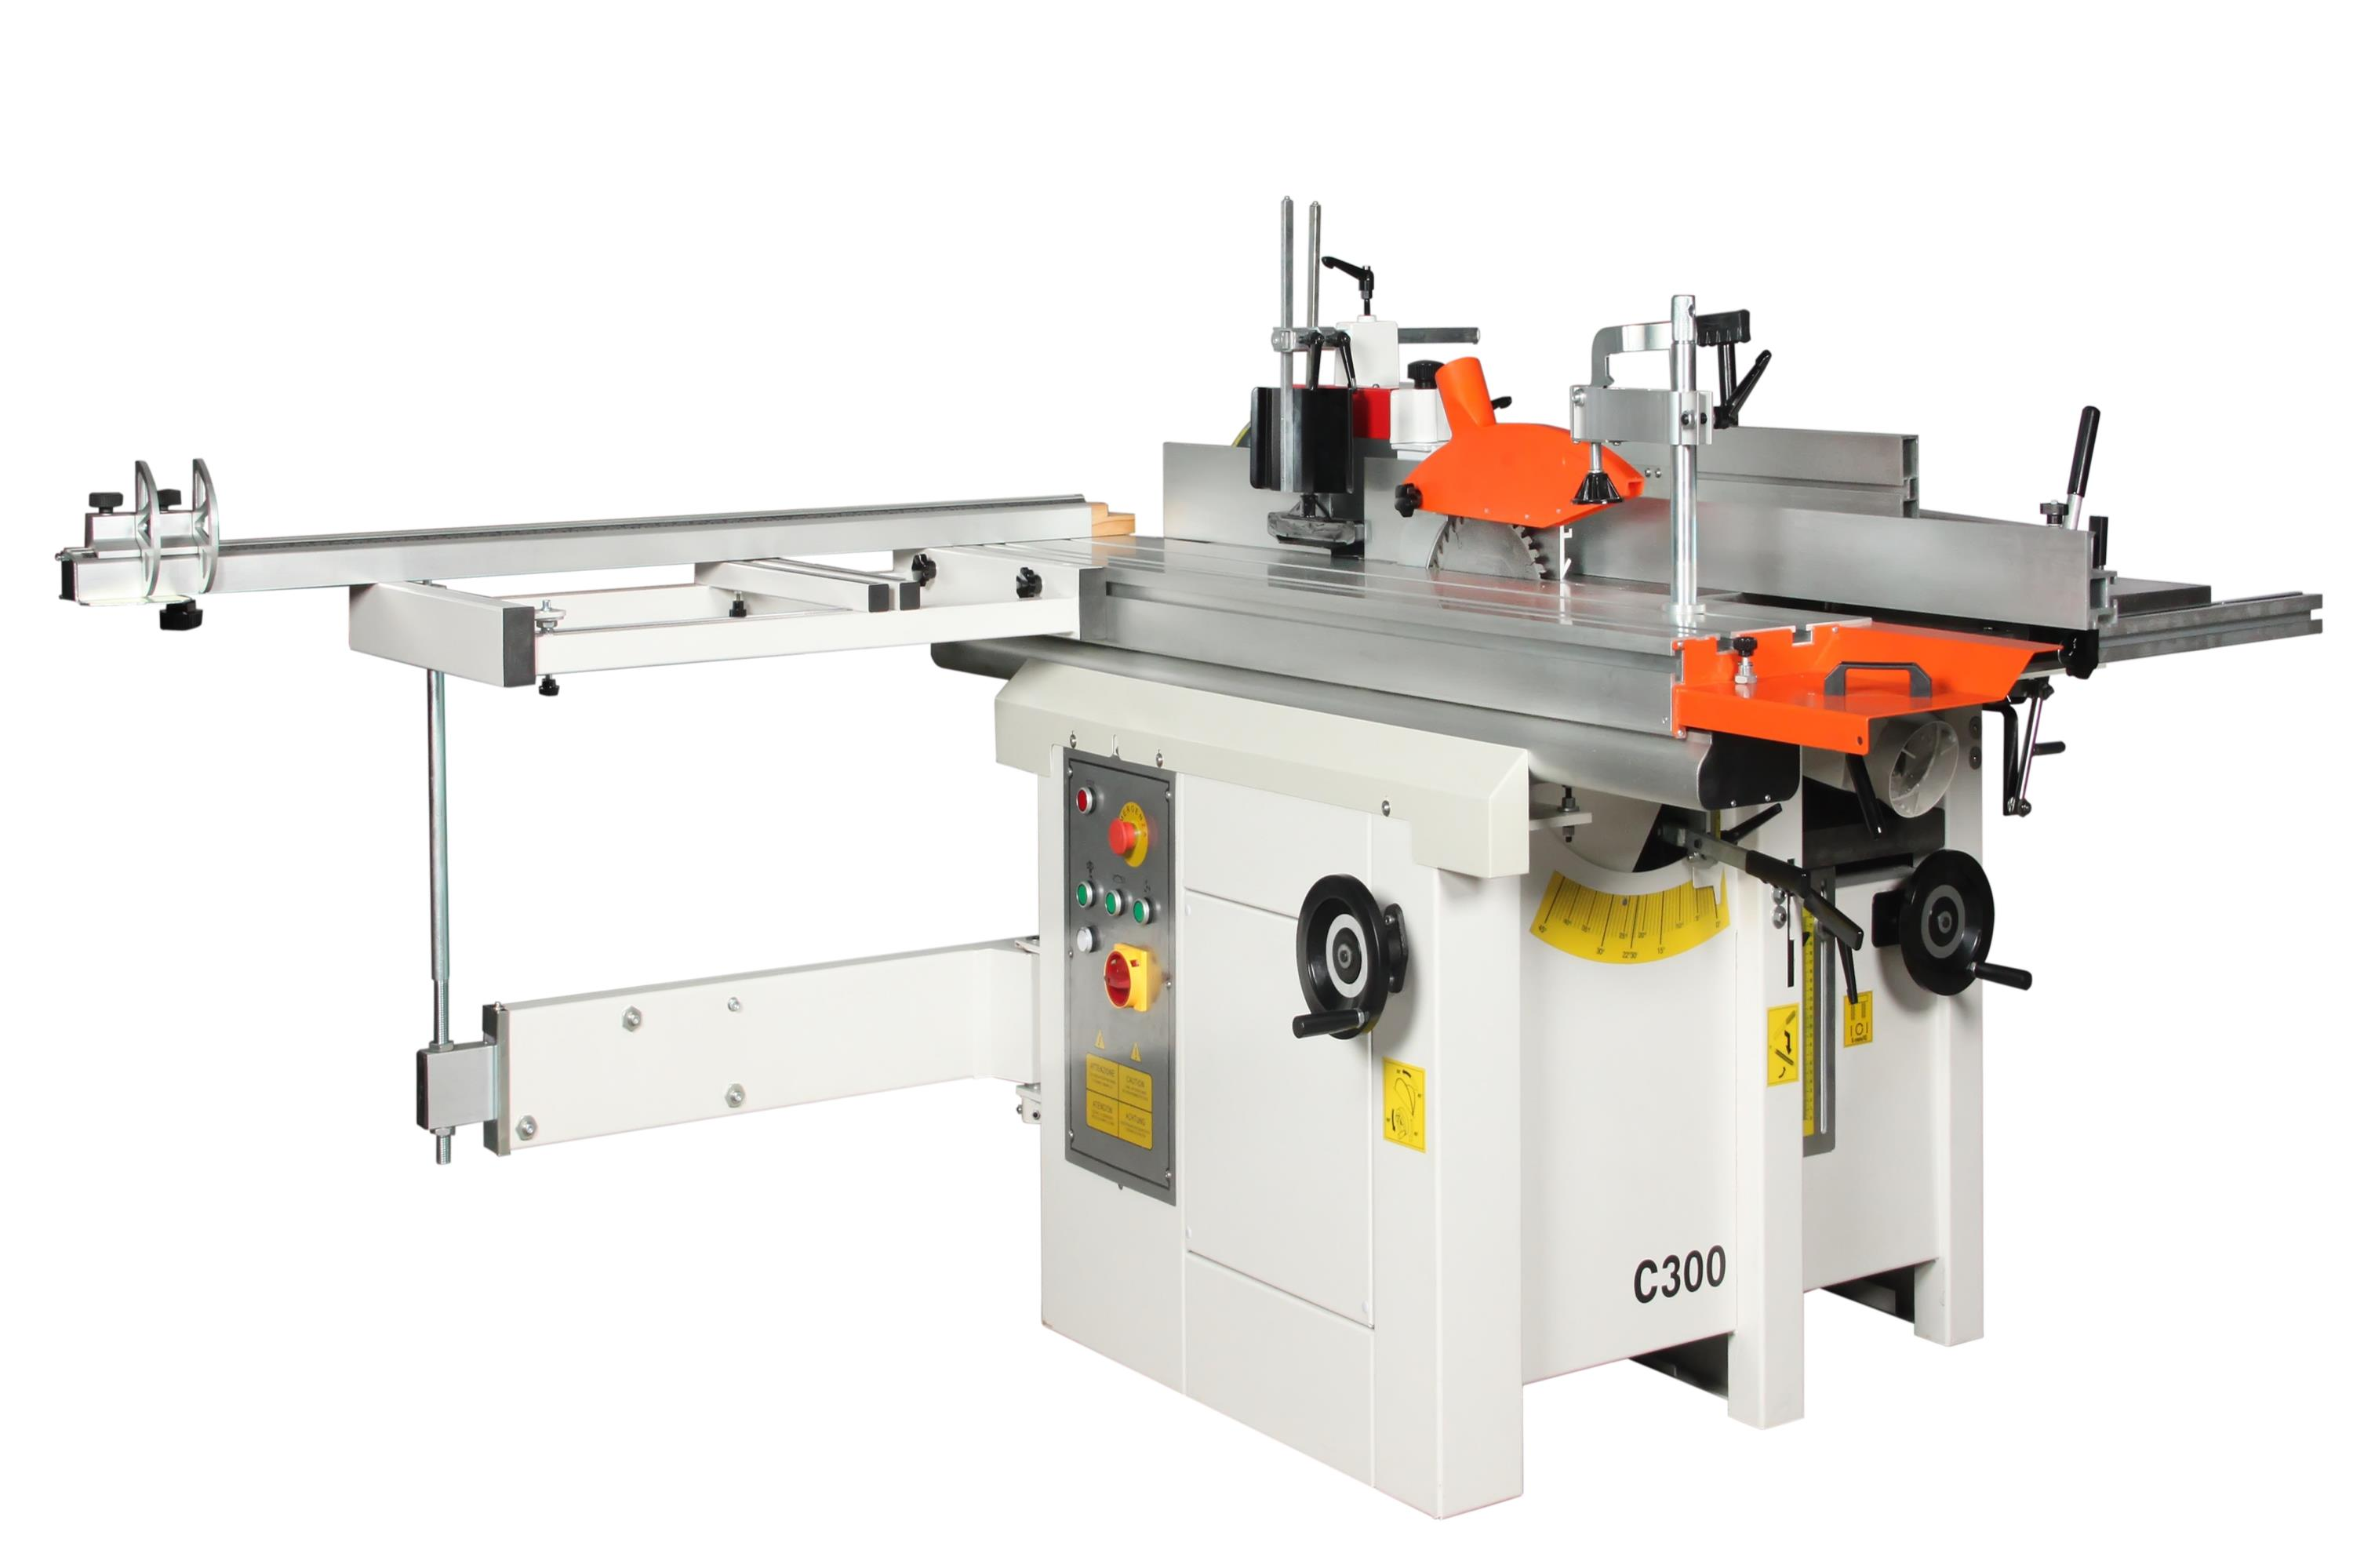 C300 (5 Functions) Combined Machine